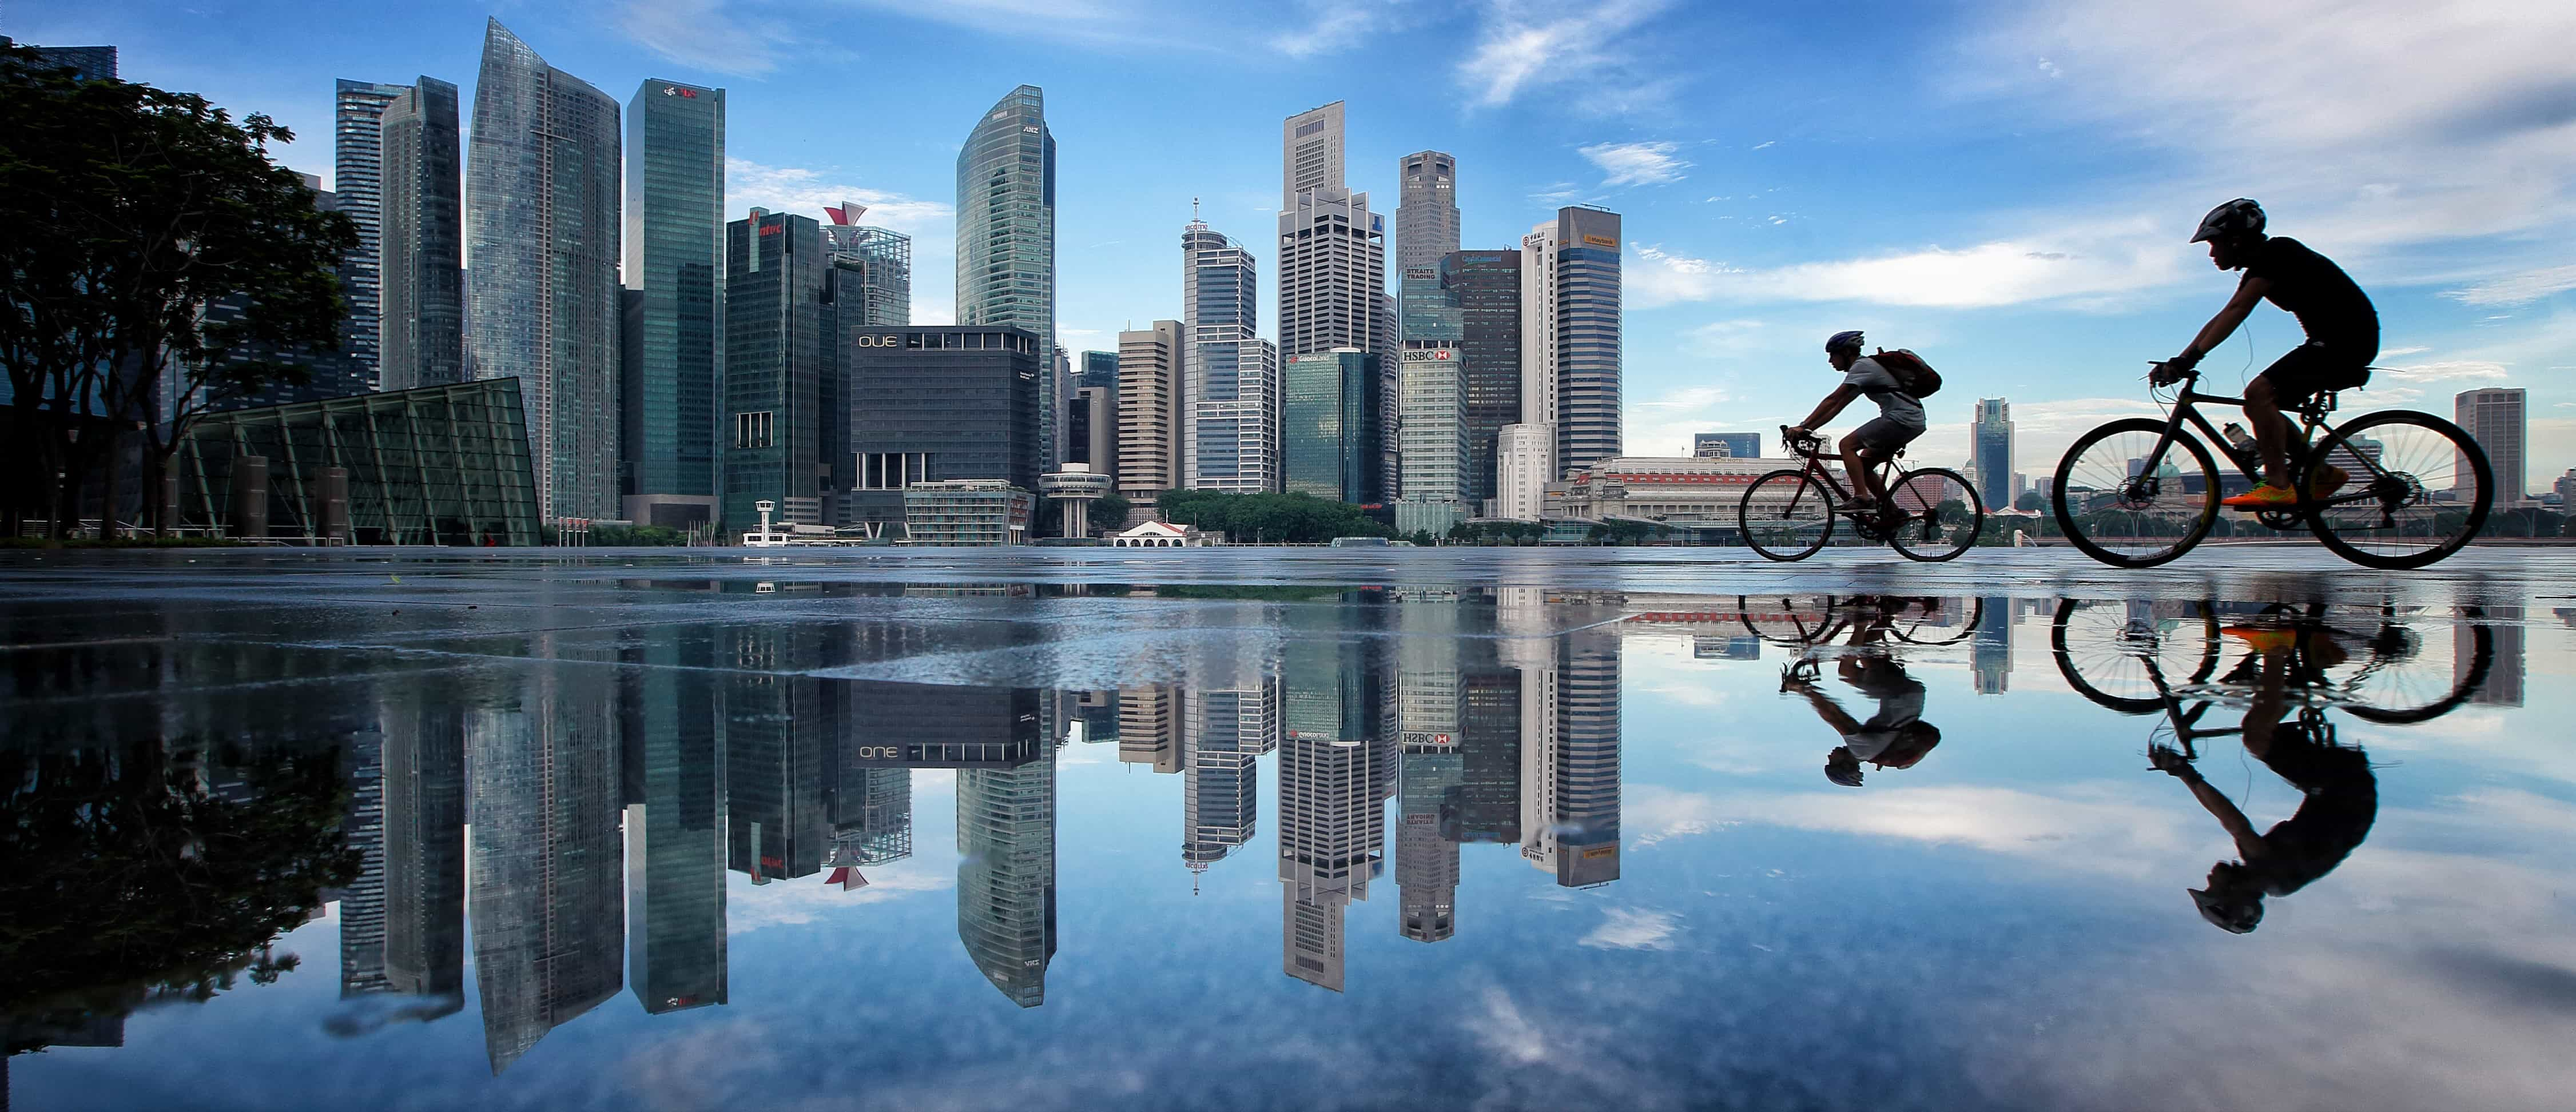 Singapore's Central Business District, November 2016. Photo: Getty images/Suhaimi Abdullah